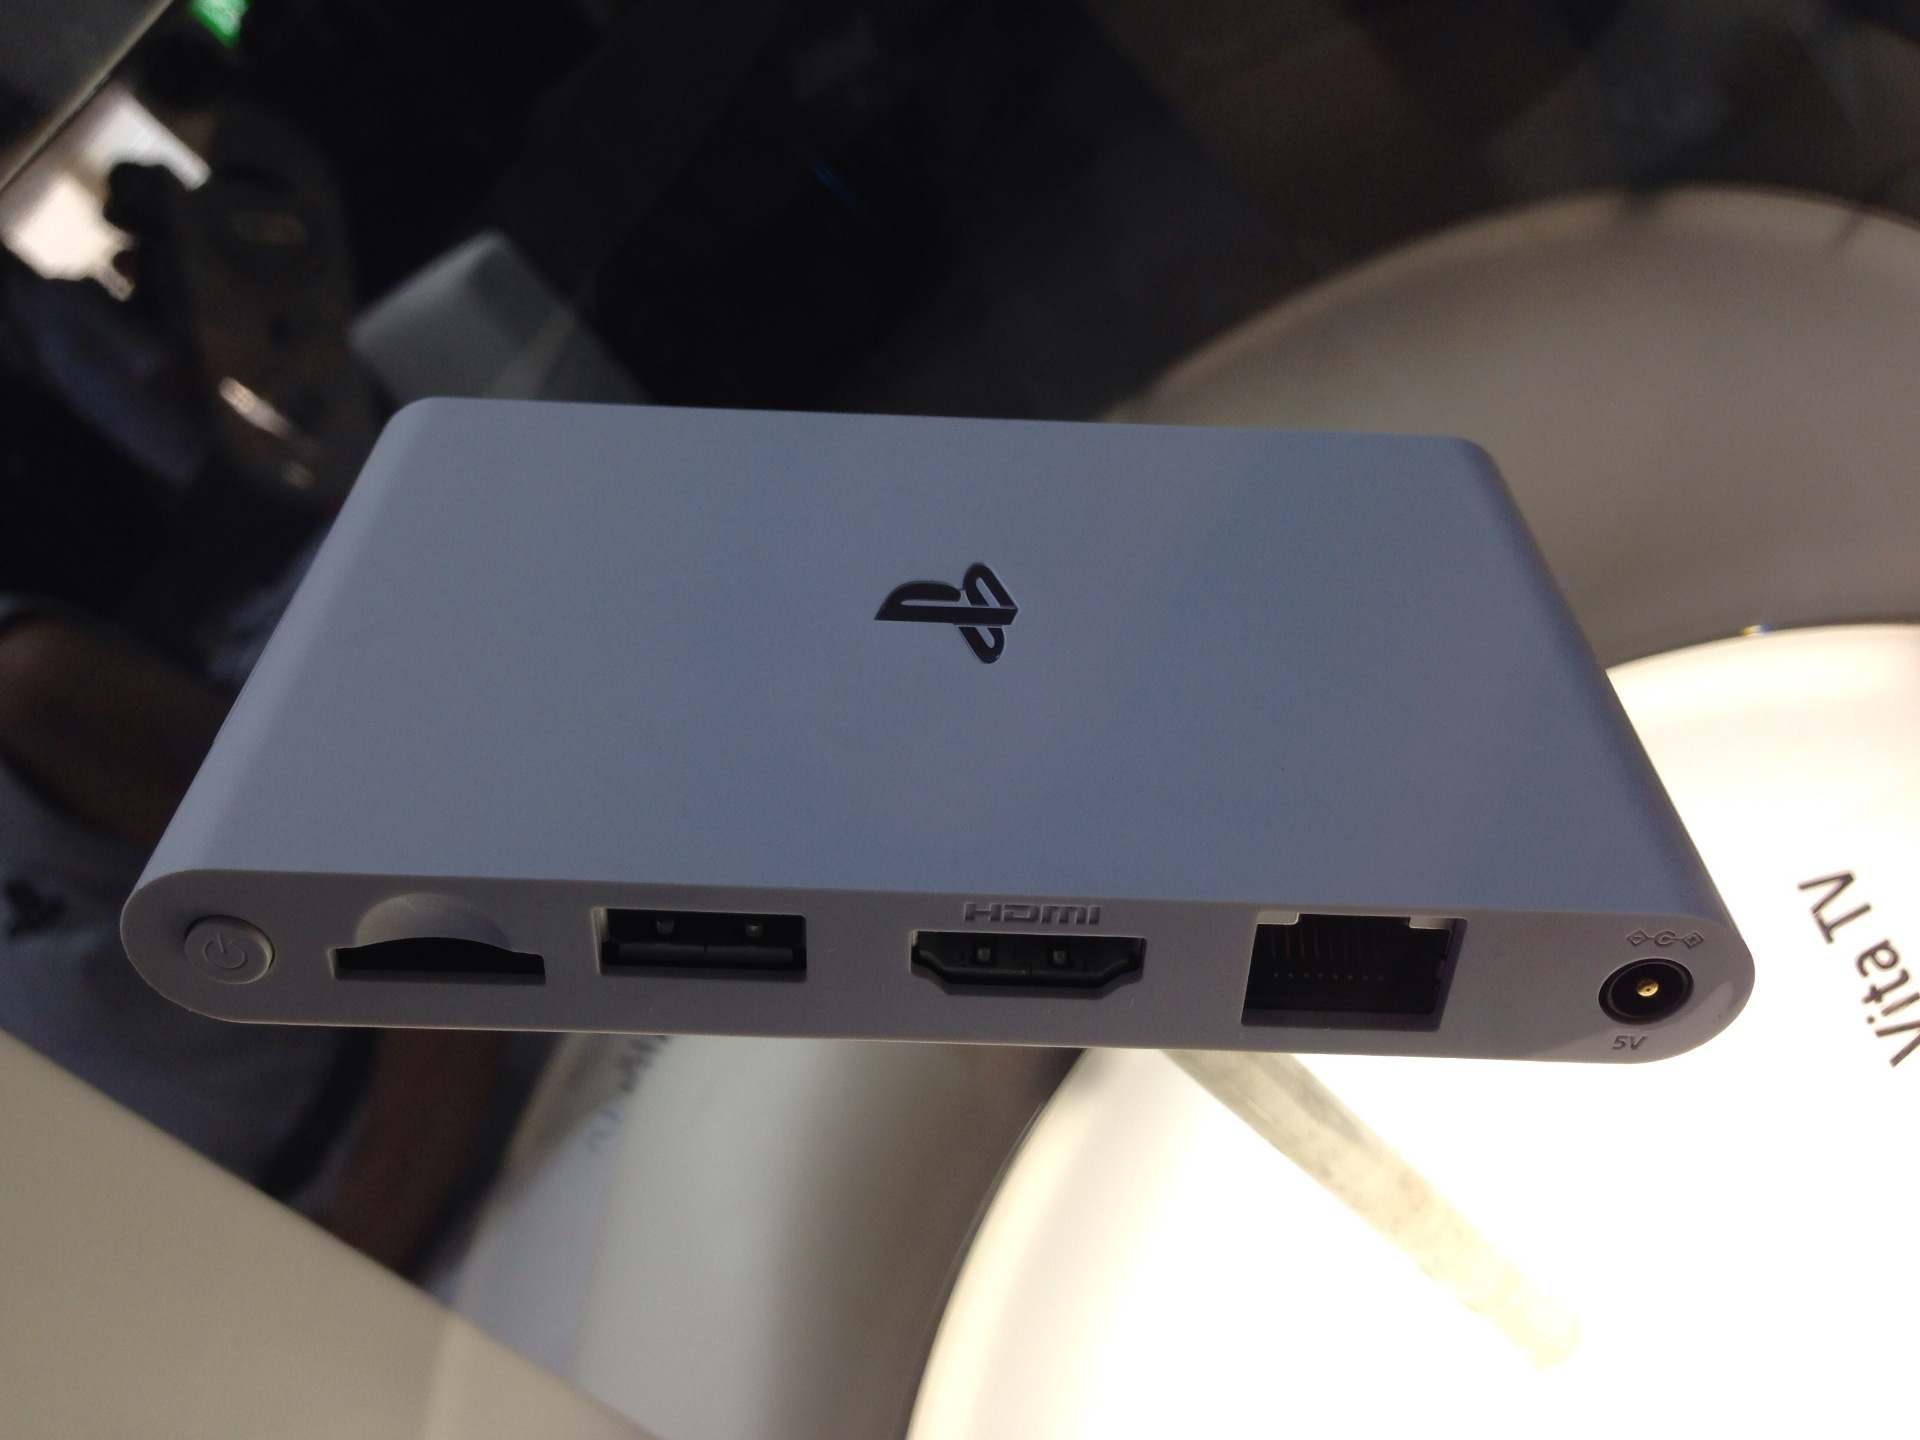 Sony Playstation 2 Hdmi Cable